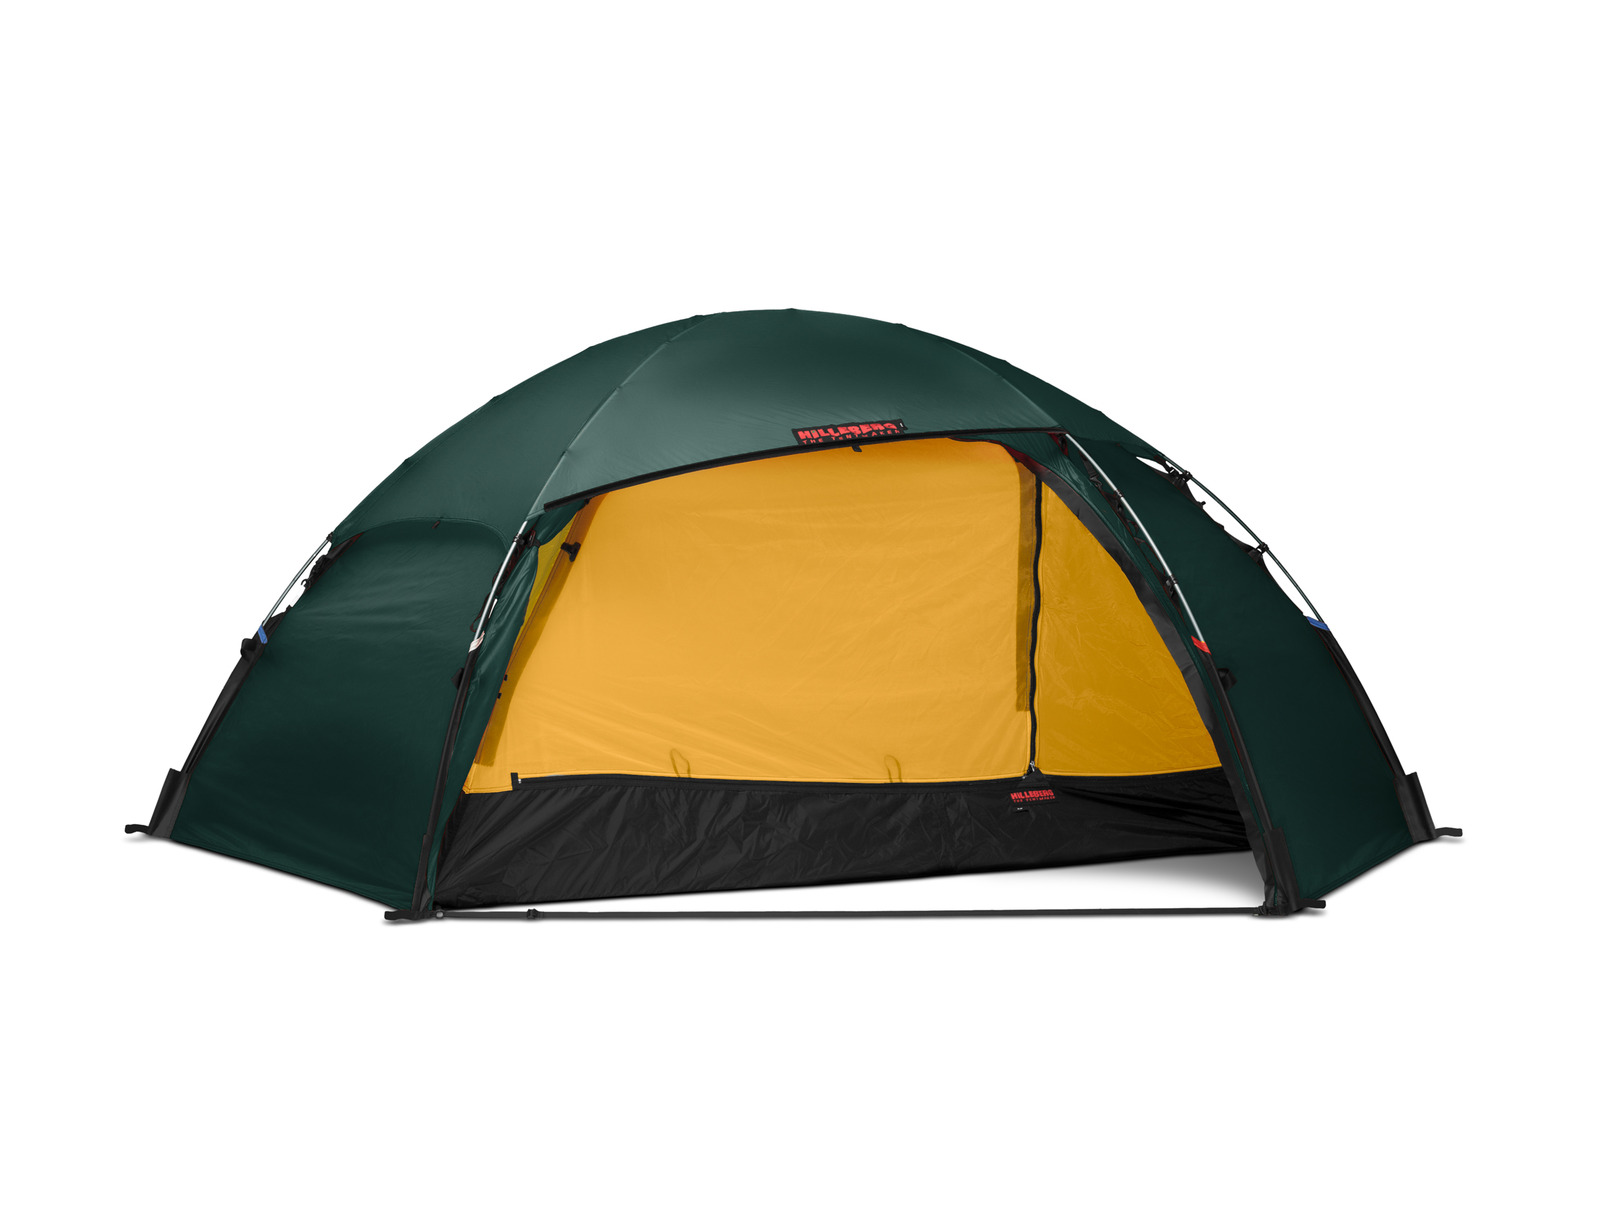 Hilleberg Allak - 2 Person 4 Season Mountain Hiking Tent - Green  sc 1 st  Wild Earth & 4 Season Hiking Tents Mountain u0026 Expedition Tents